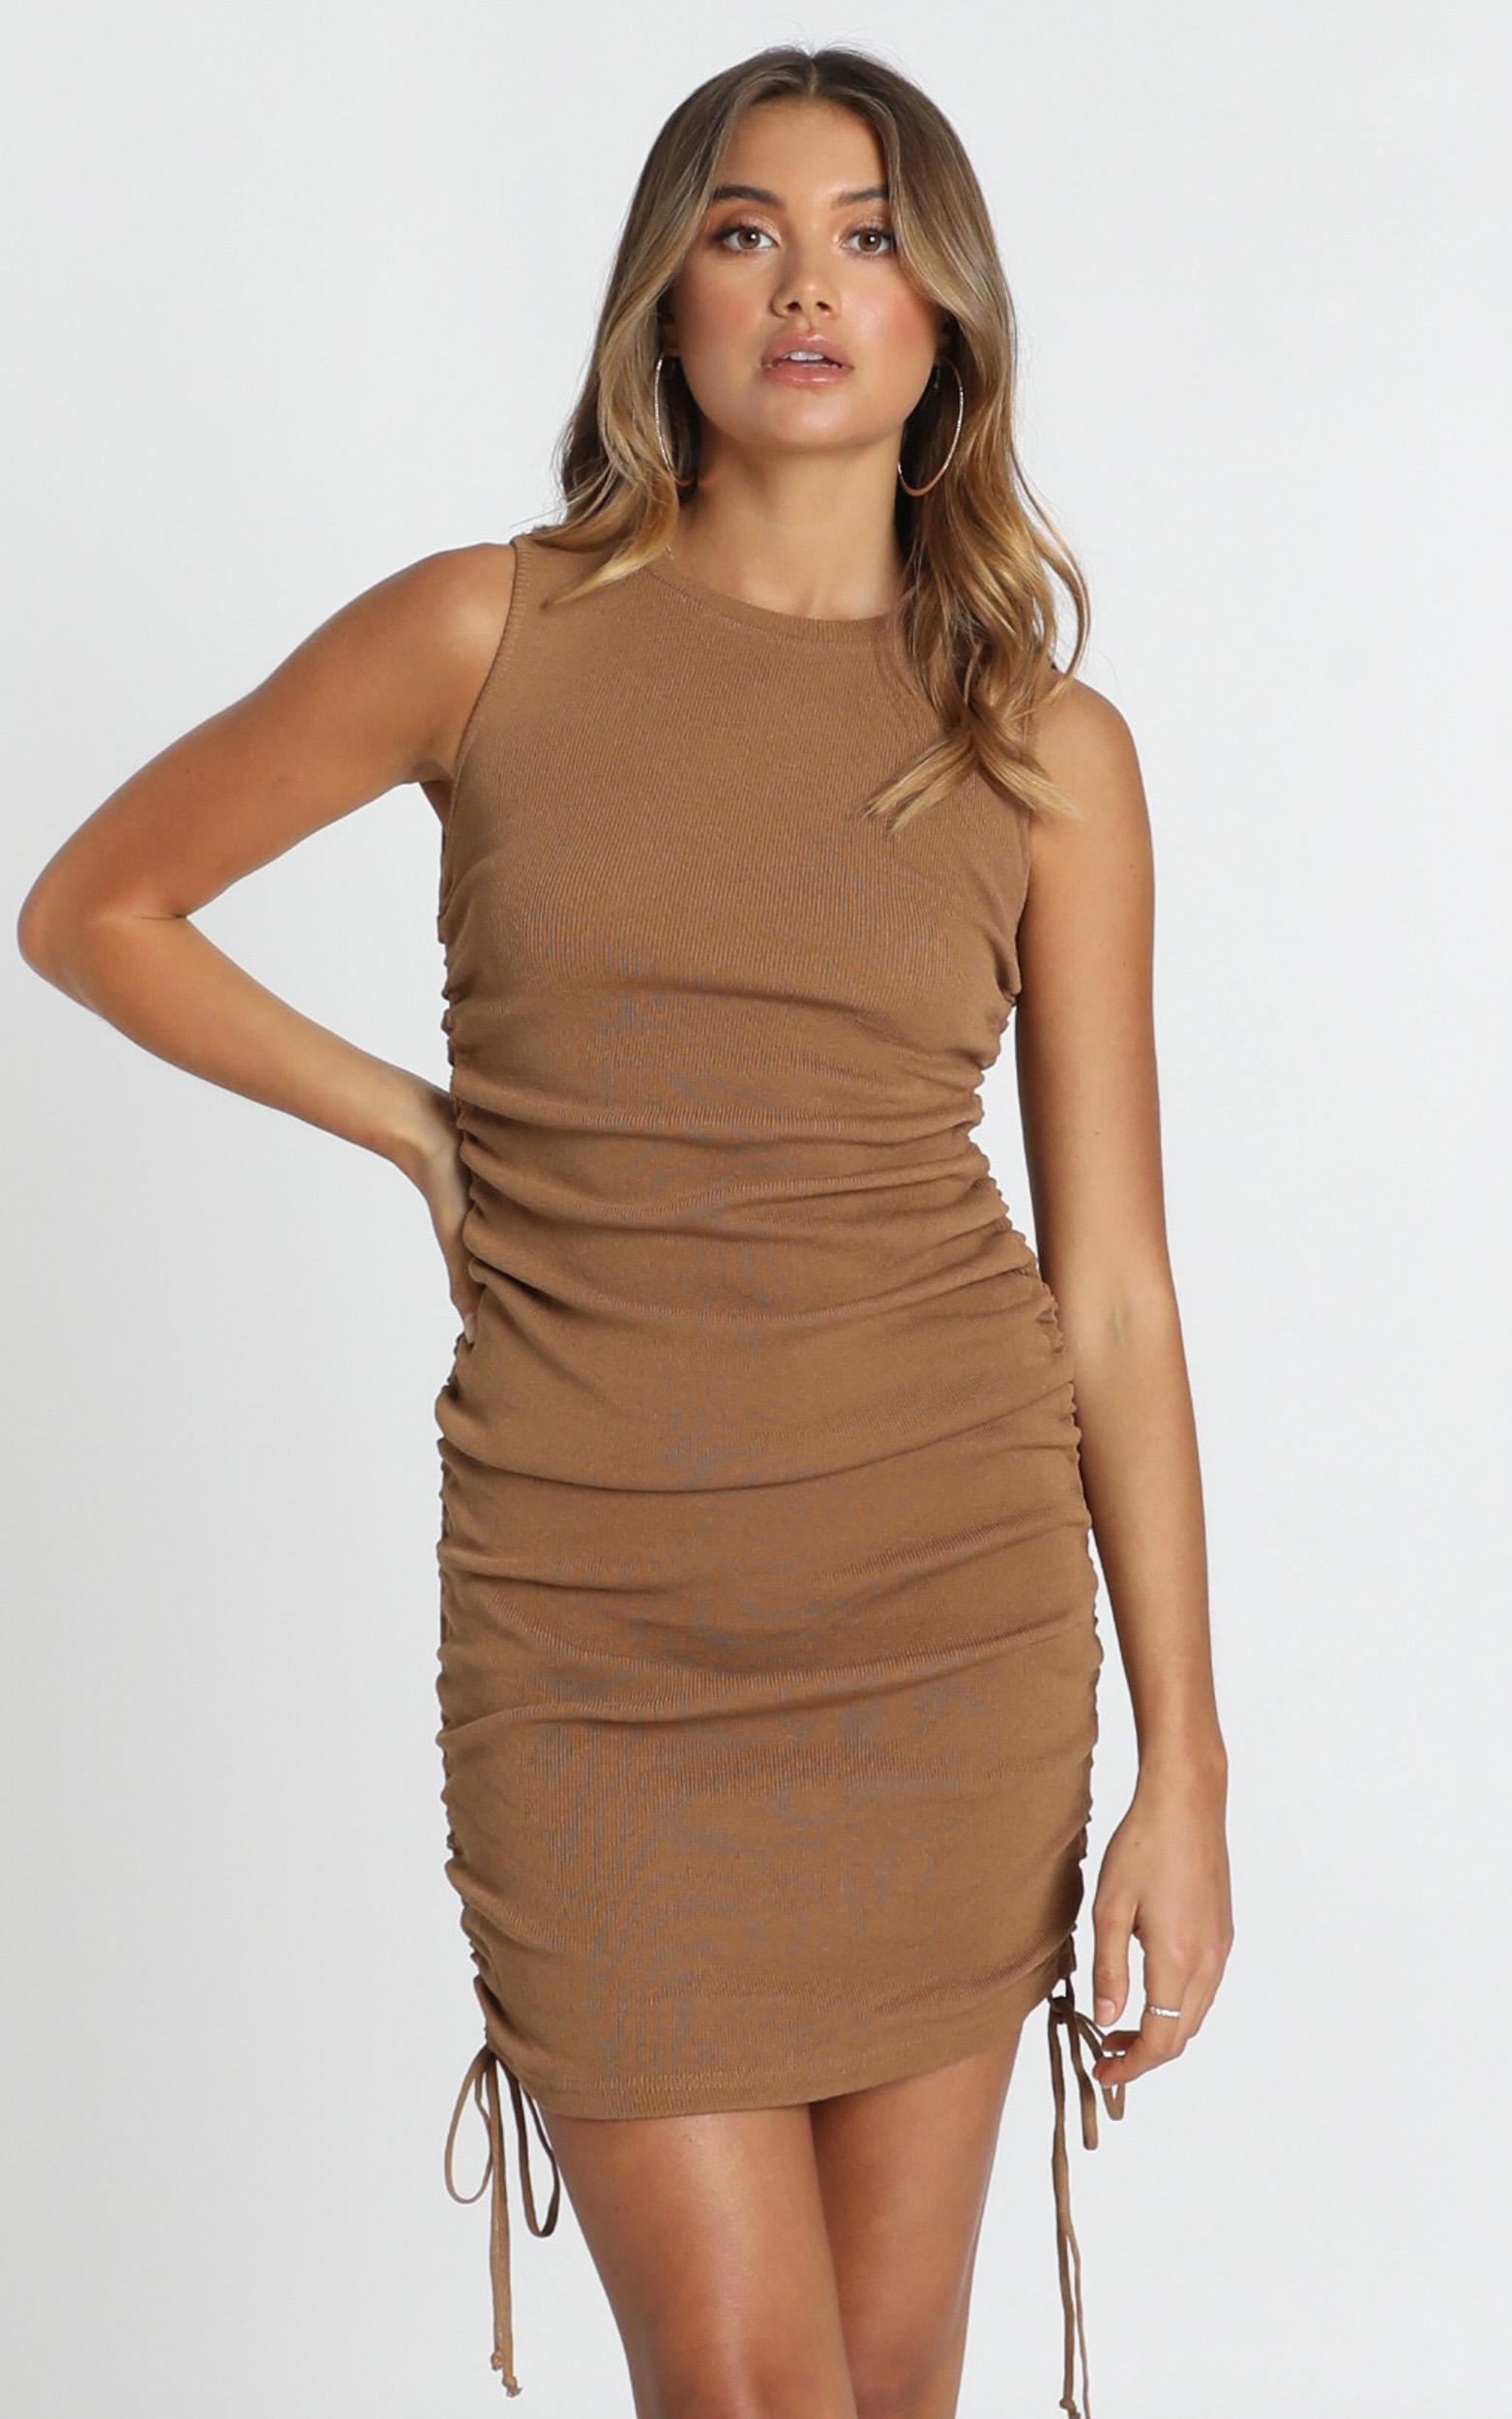 Lioness - Military Minds dress in tan - 12 (L), Tan, hi-res image number null